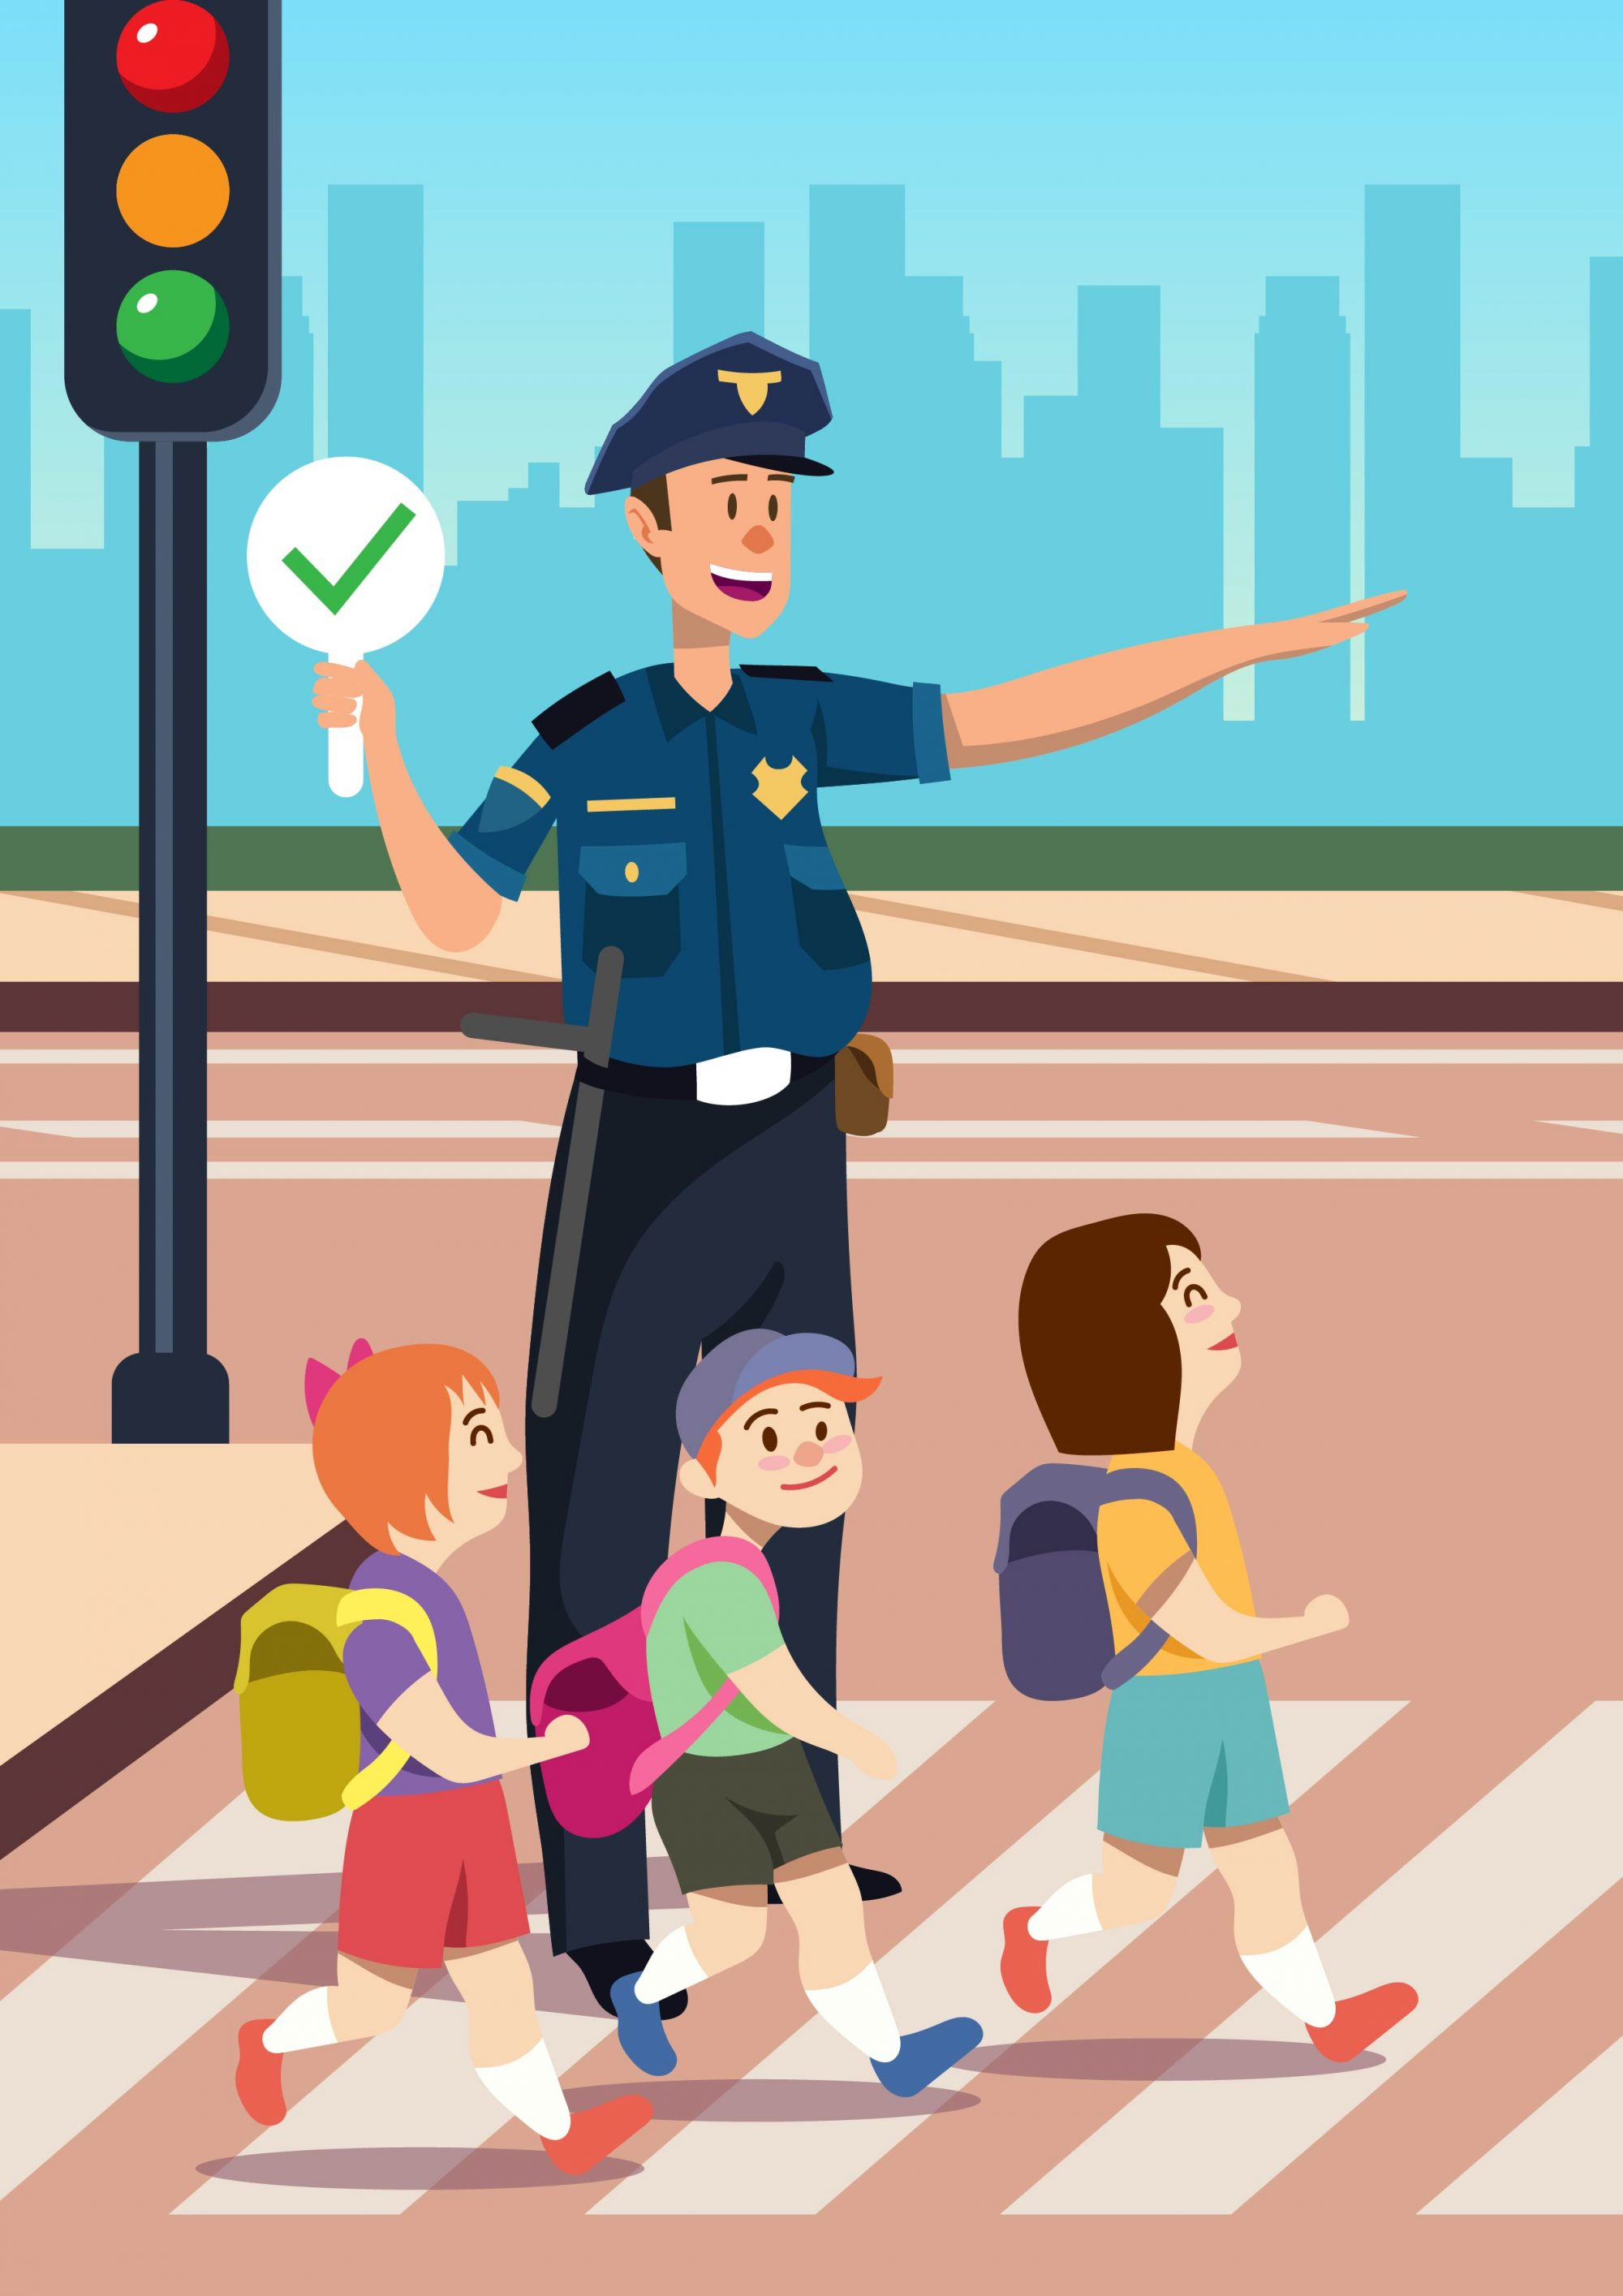 Police Officer Helping